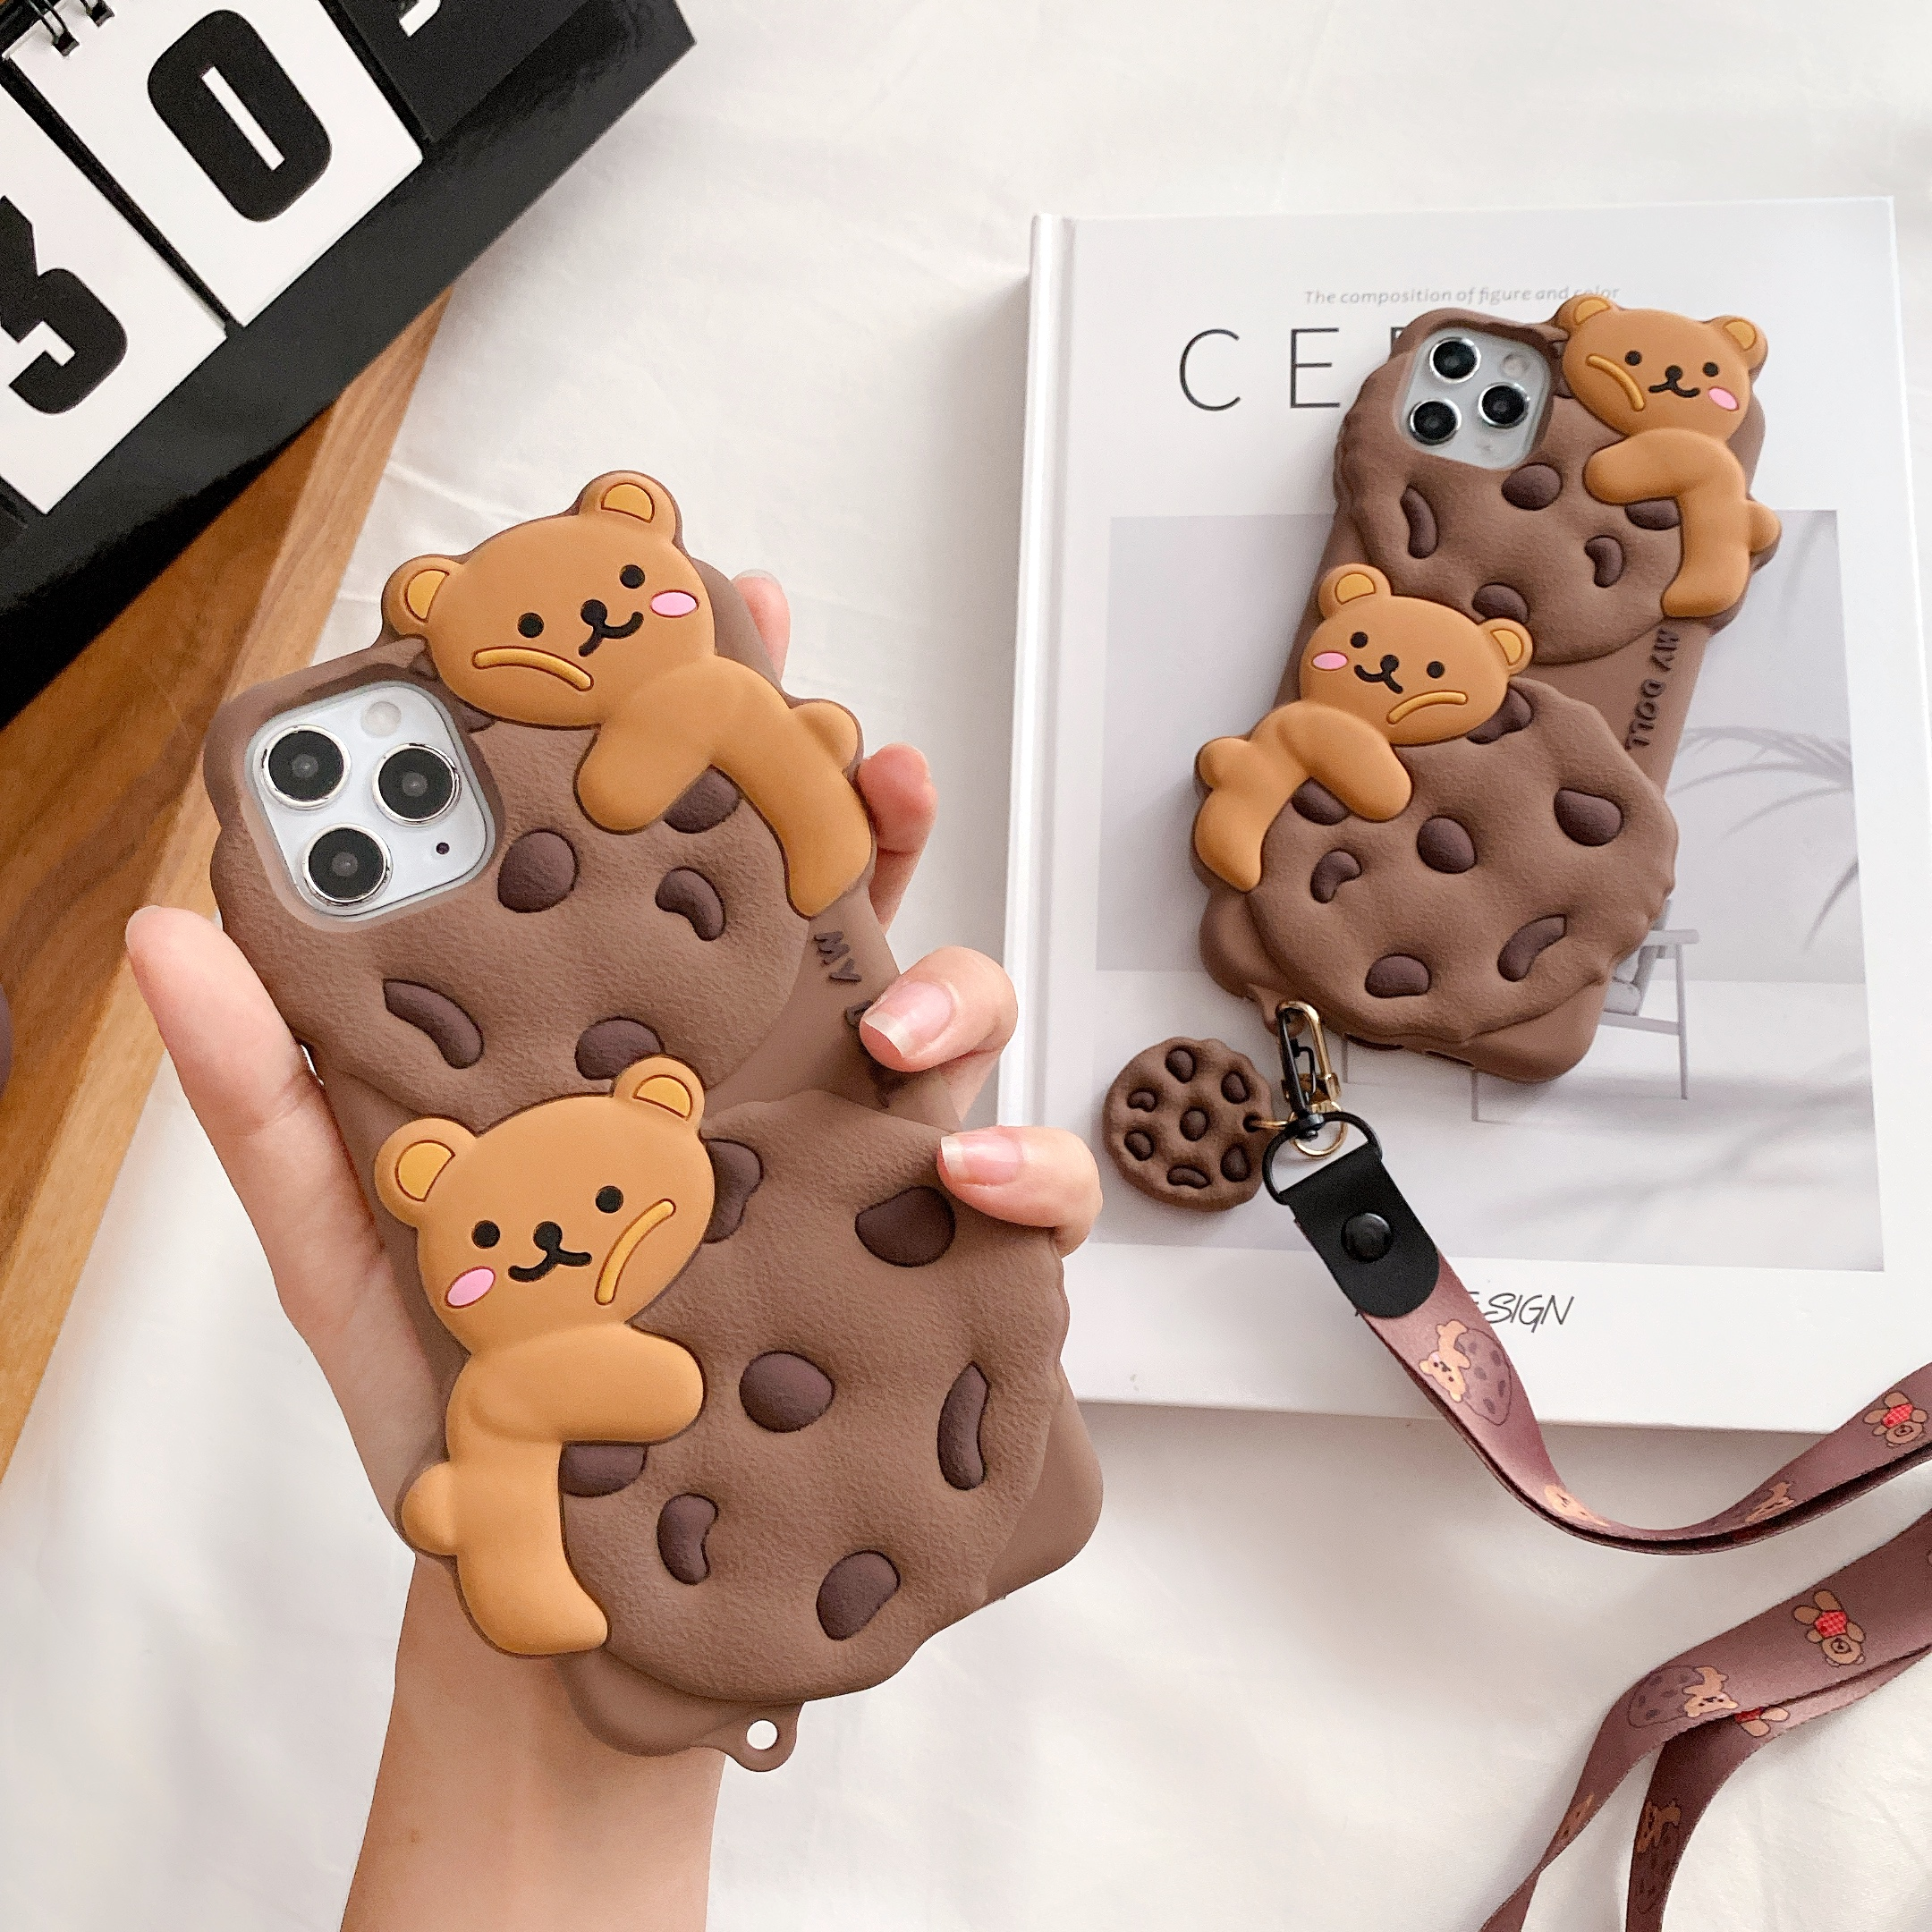 3D Cute Cartoon Chocolate Cookie Bear Case For Iphone 12 Mini 11 Pro XS Max XR X 7 8 Biscuit Soft Silicone Lanyard Rope Cover